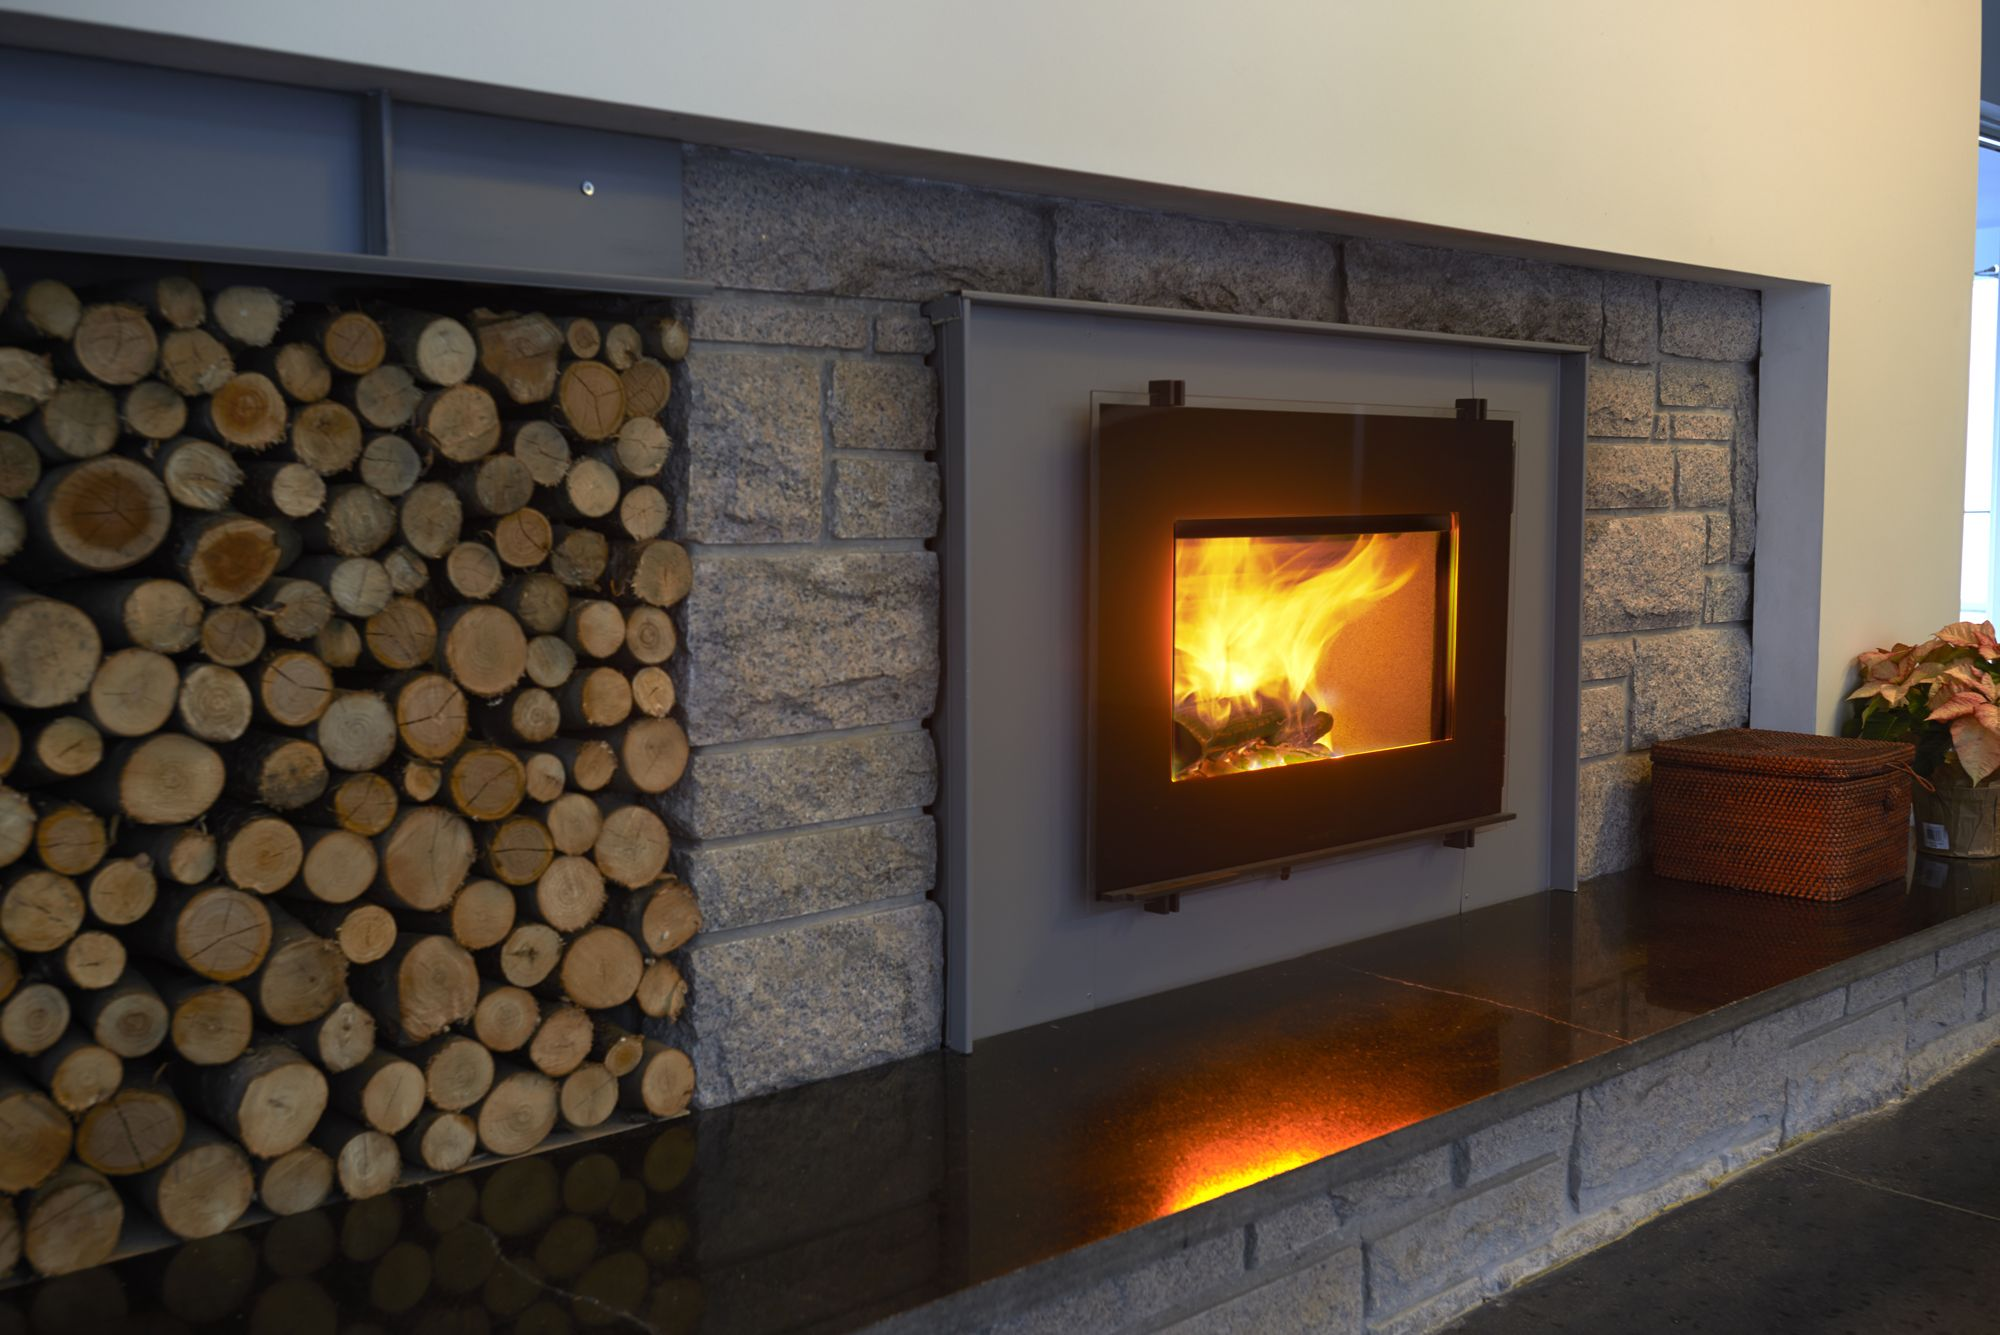 Modern Fireplace Insert 3055 Insert In A New England Modern Home For The Home Wood